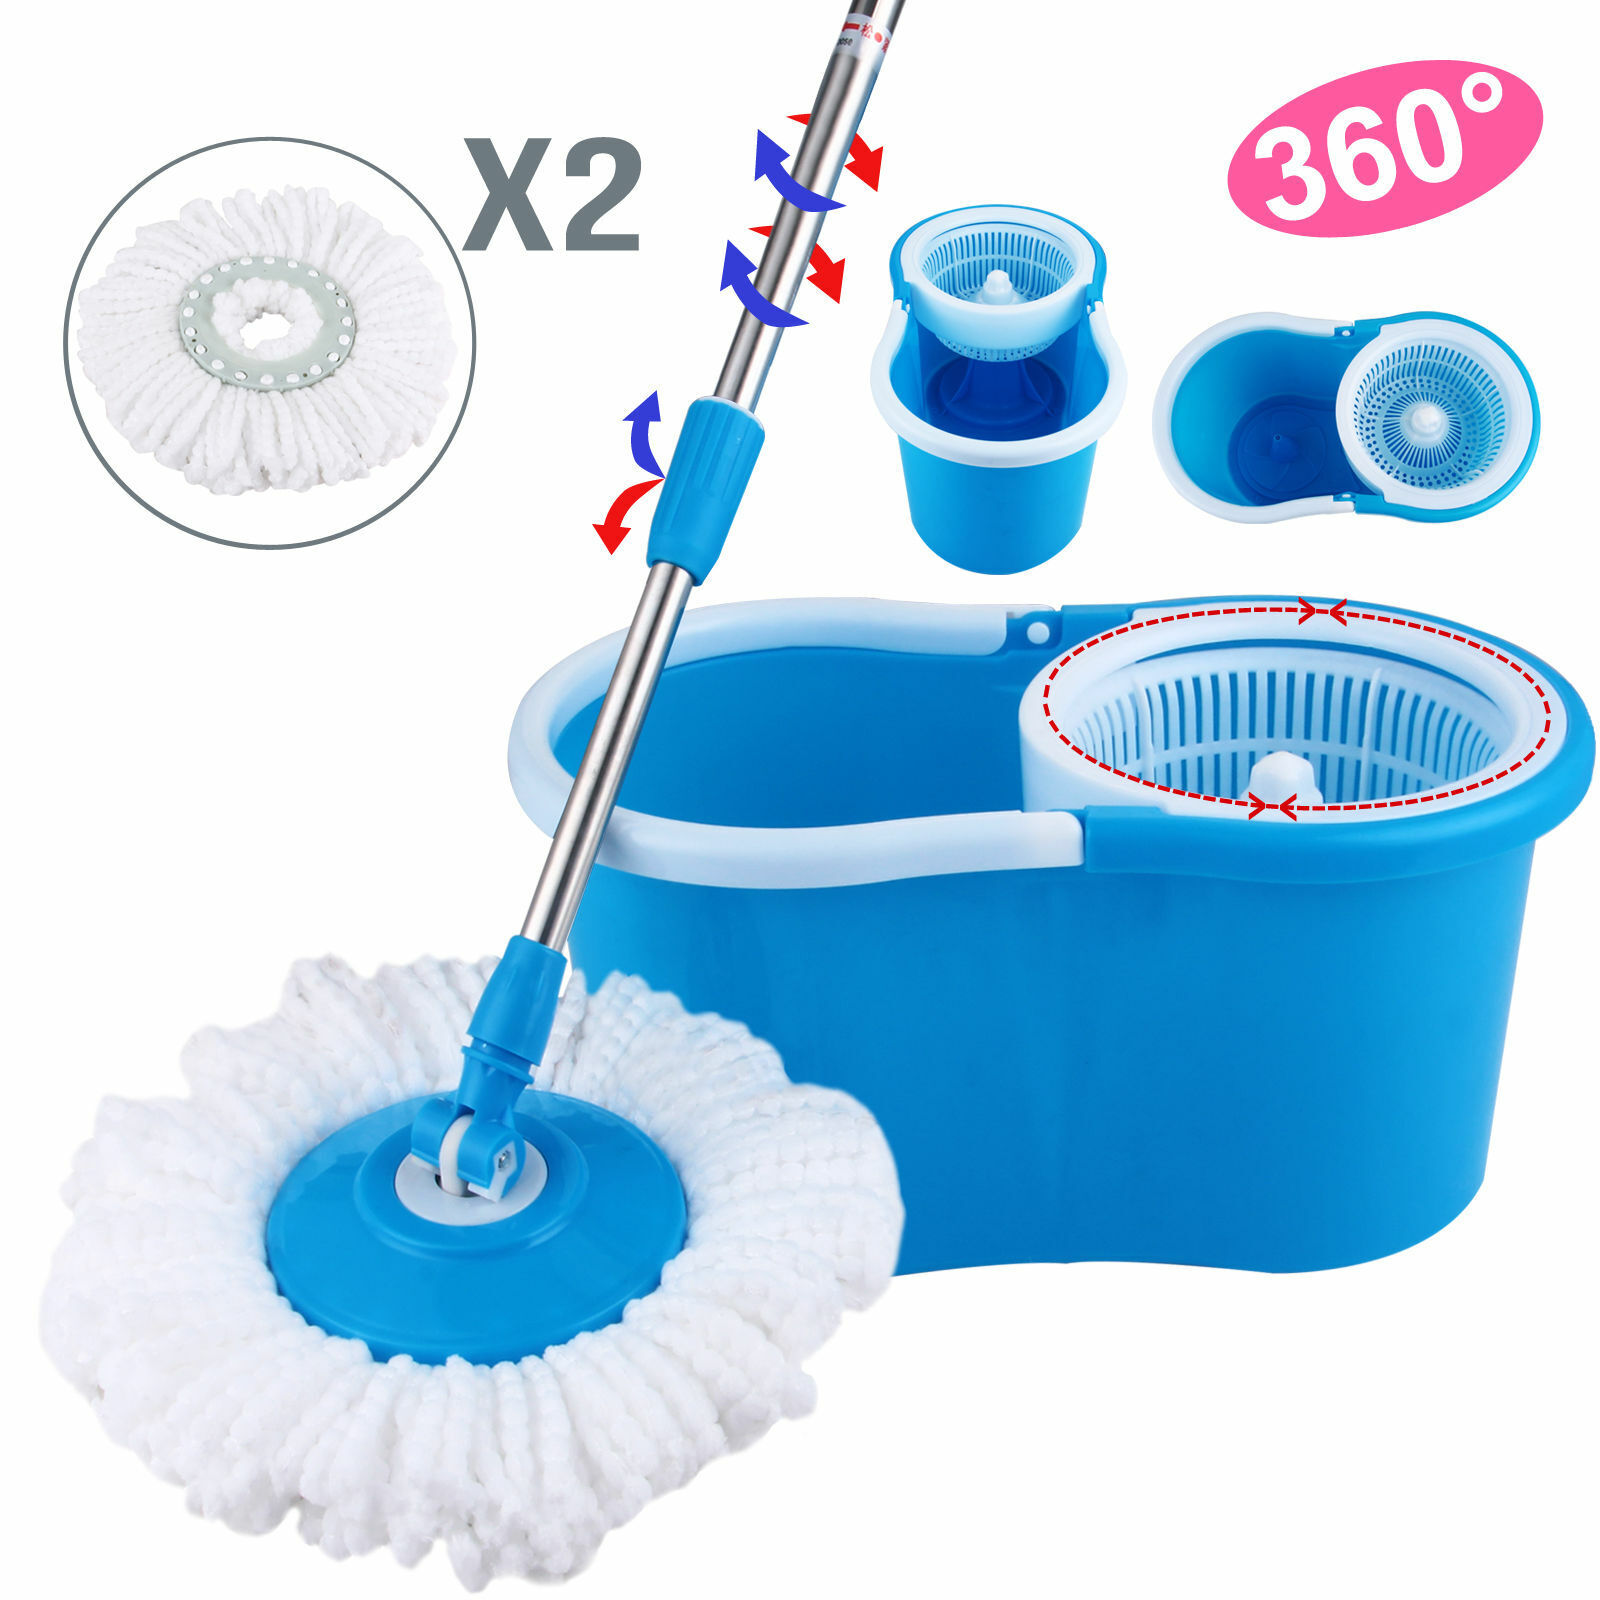 Upgraded Deluxe 360 Spin Mop & Bucket Set household Floor Mop Cleaning System bucket cleaning deluxe Featured floor household mop set spin system upgraded